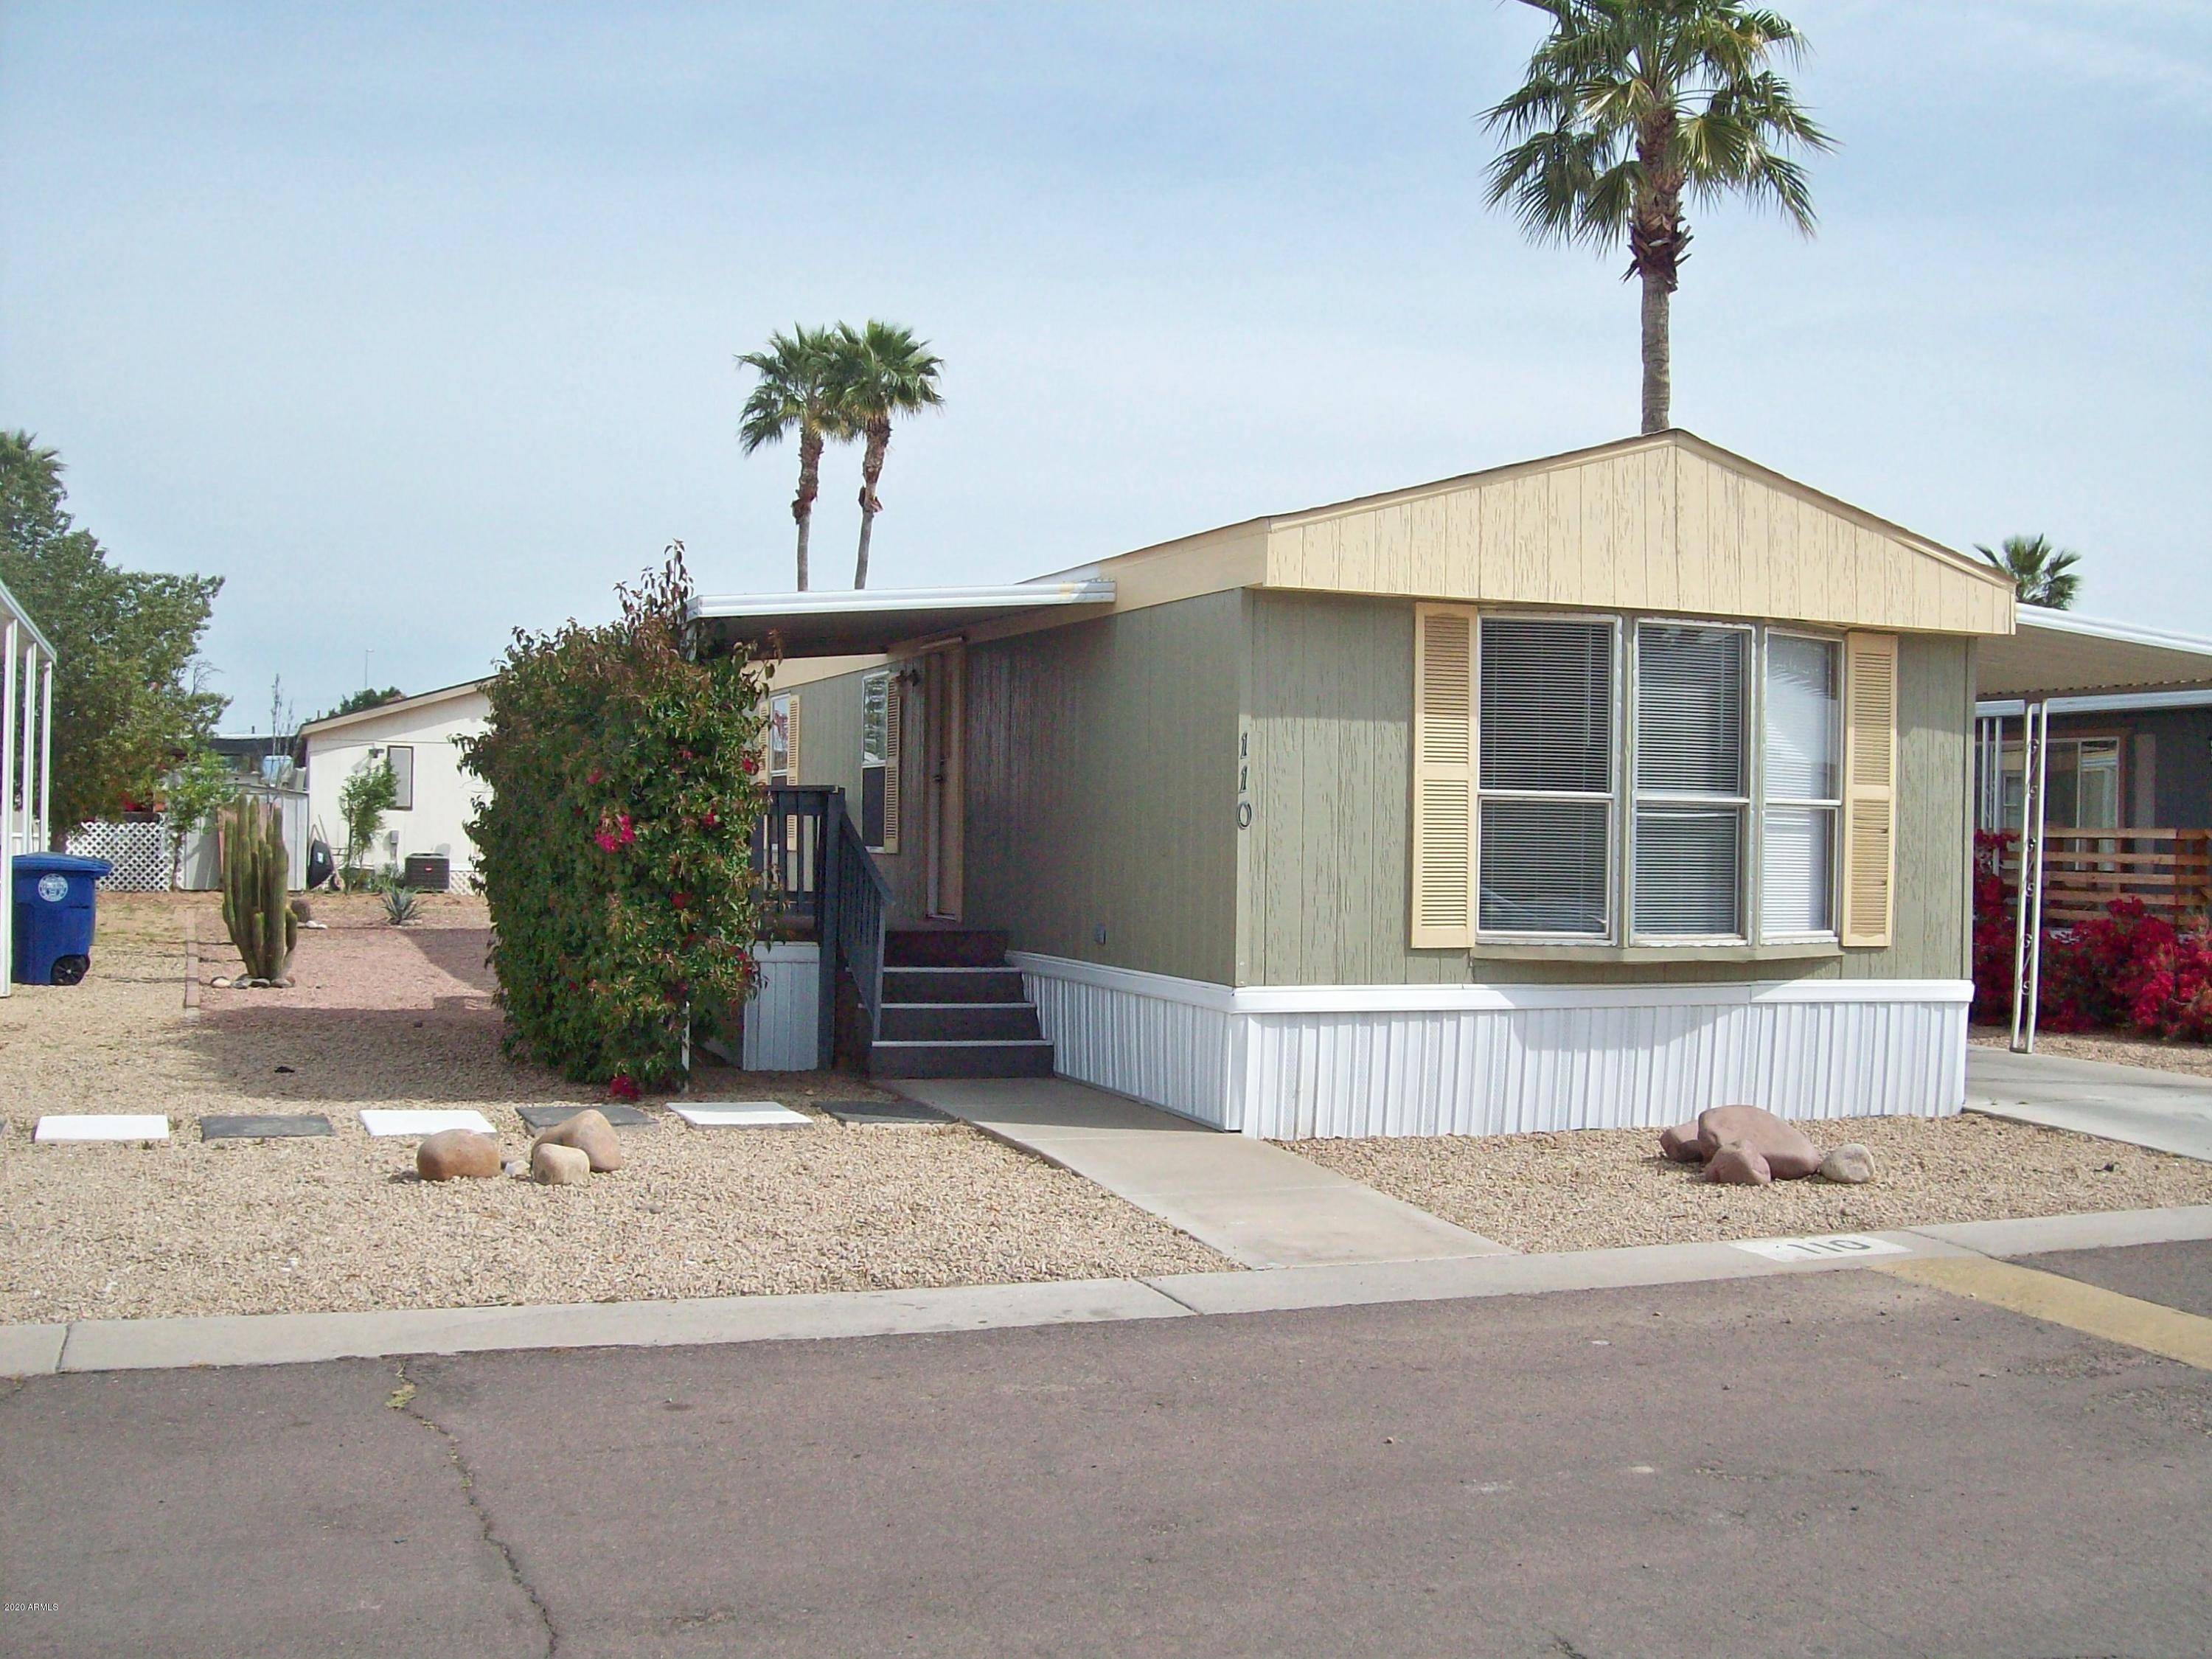 Photo of 12721 W Greenway Road #110, El Mirage, AZ 85335